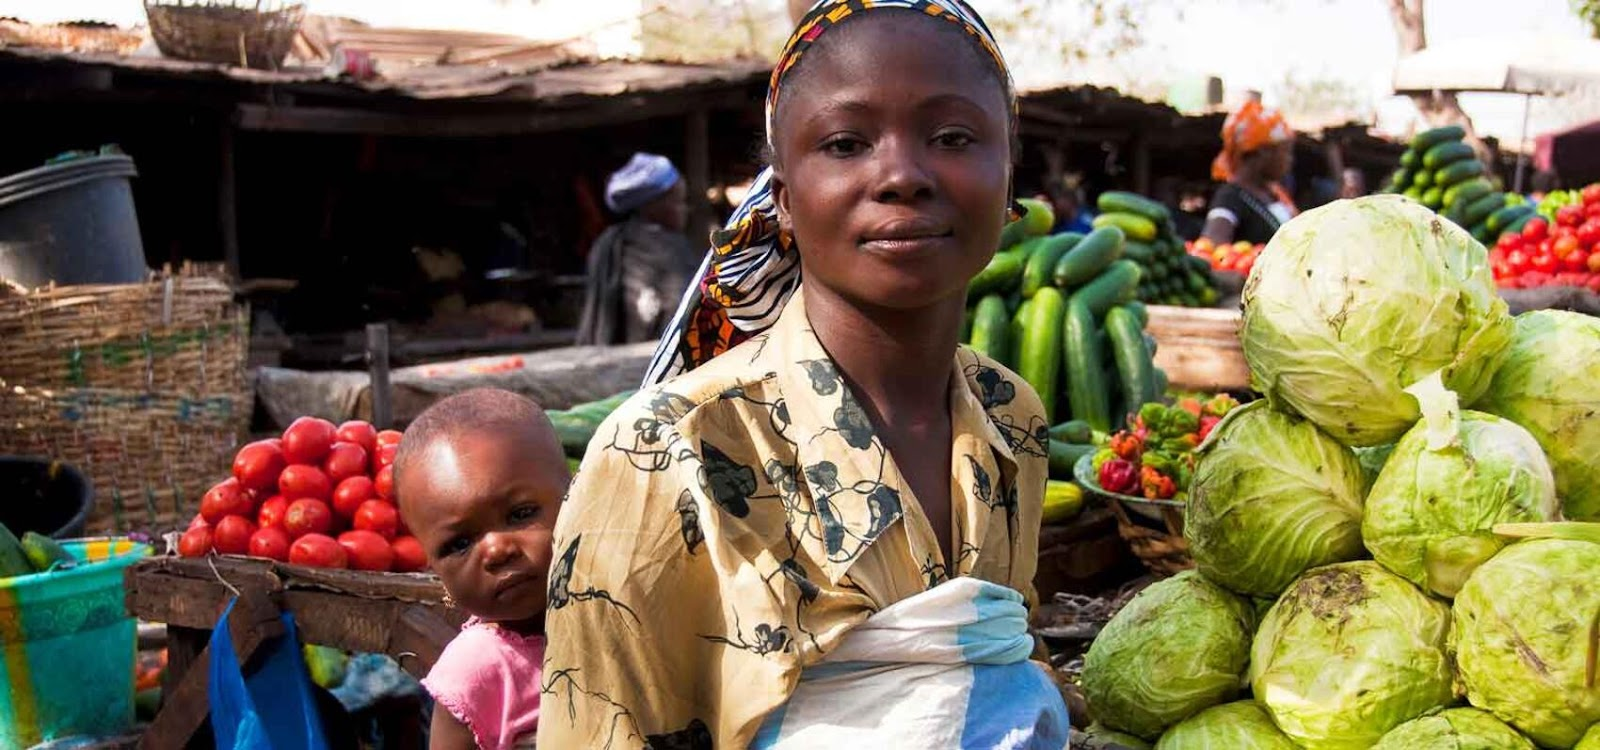 An African youth in a market, standing in front of a vegetable stand with a baby on their back.